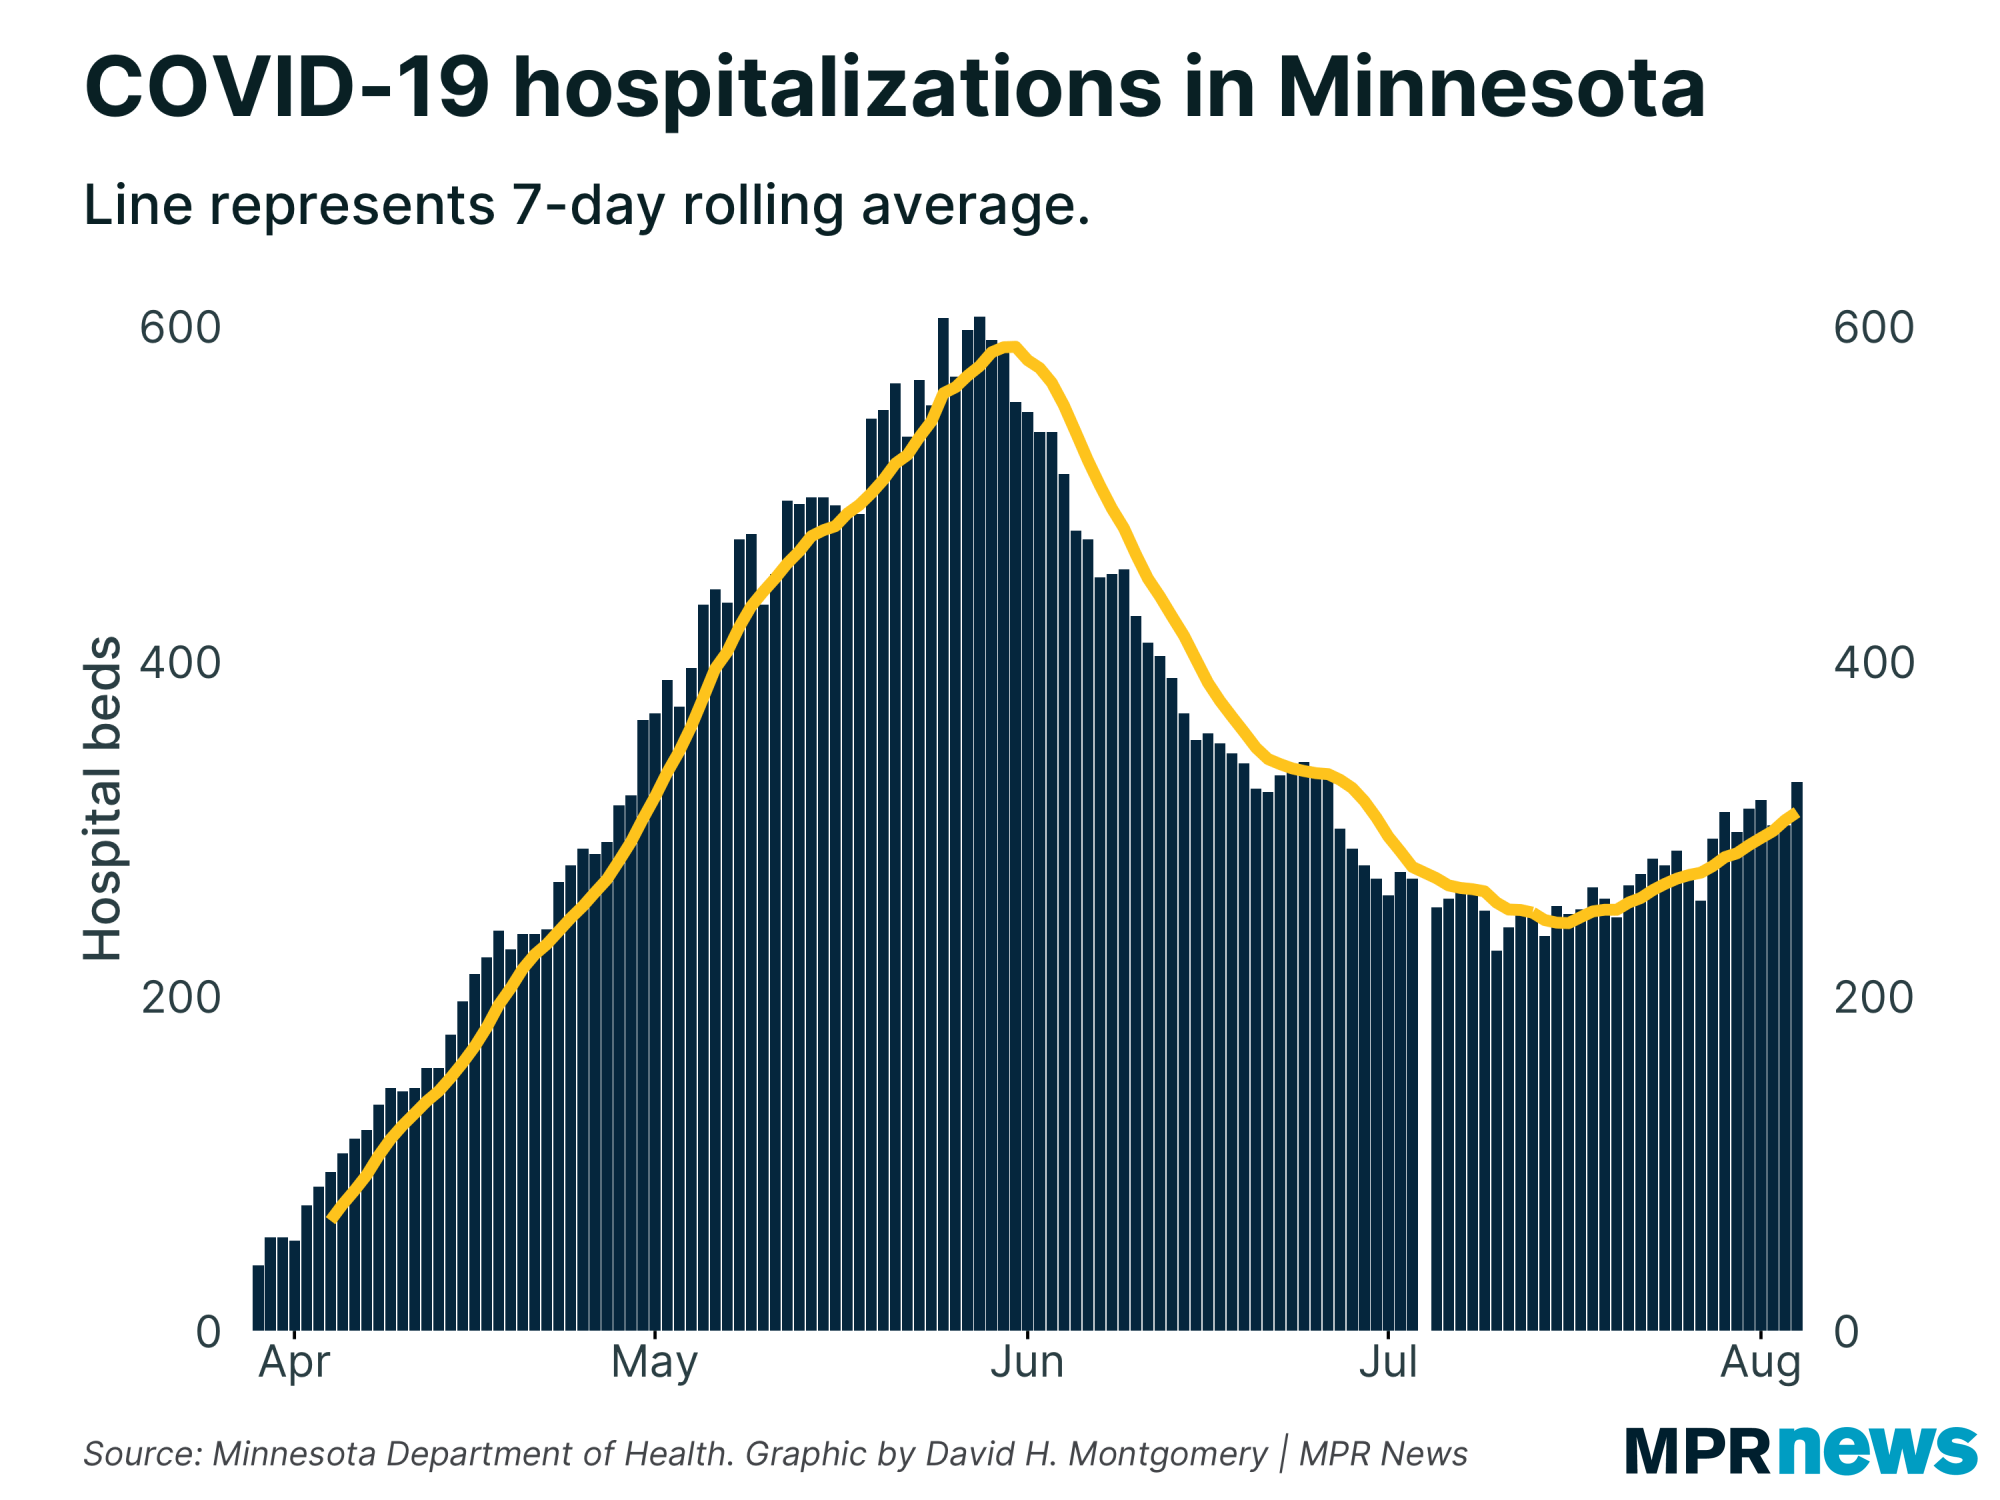 Current COVID-19 hospitalizations in Minnesota